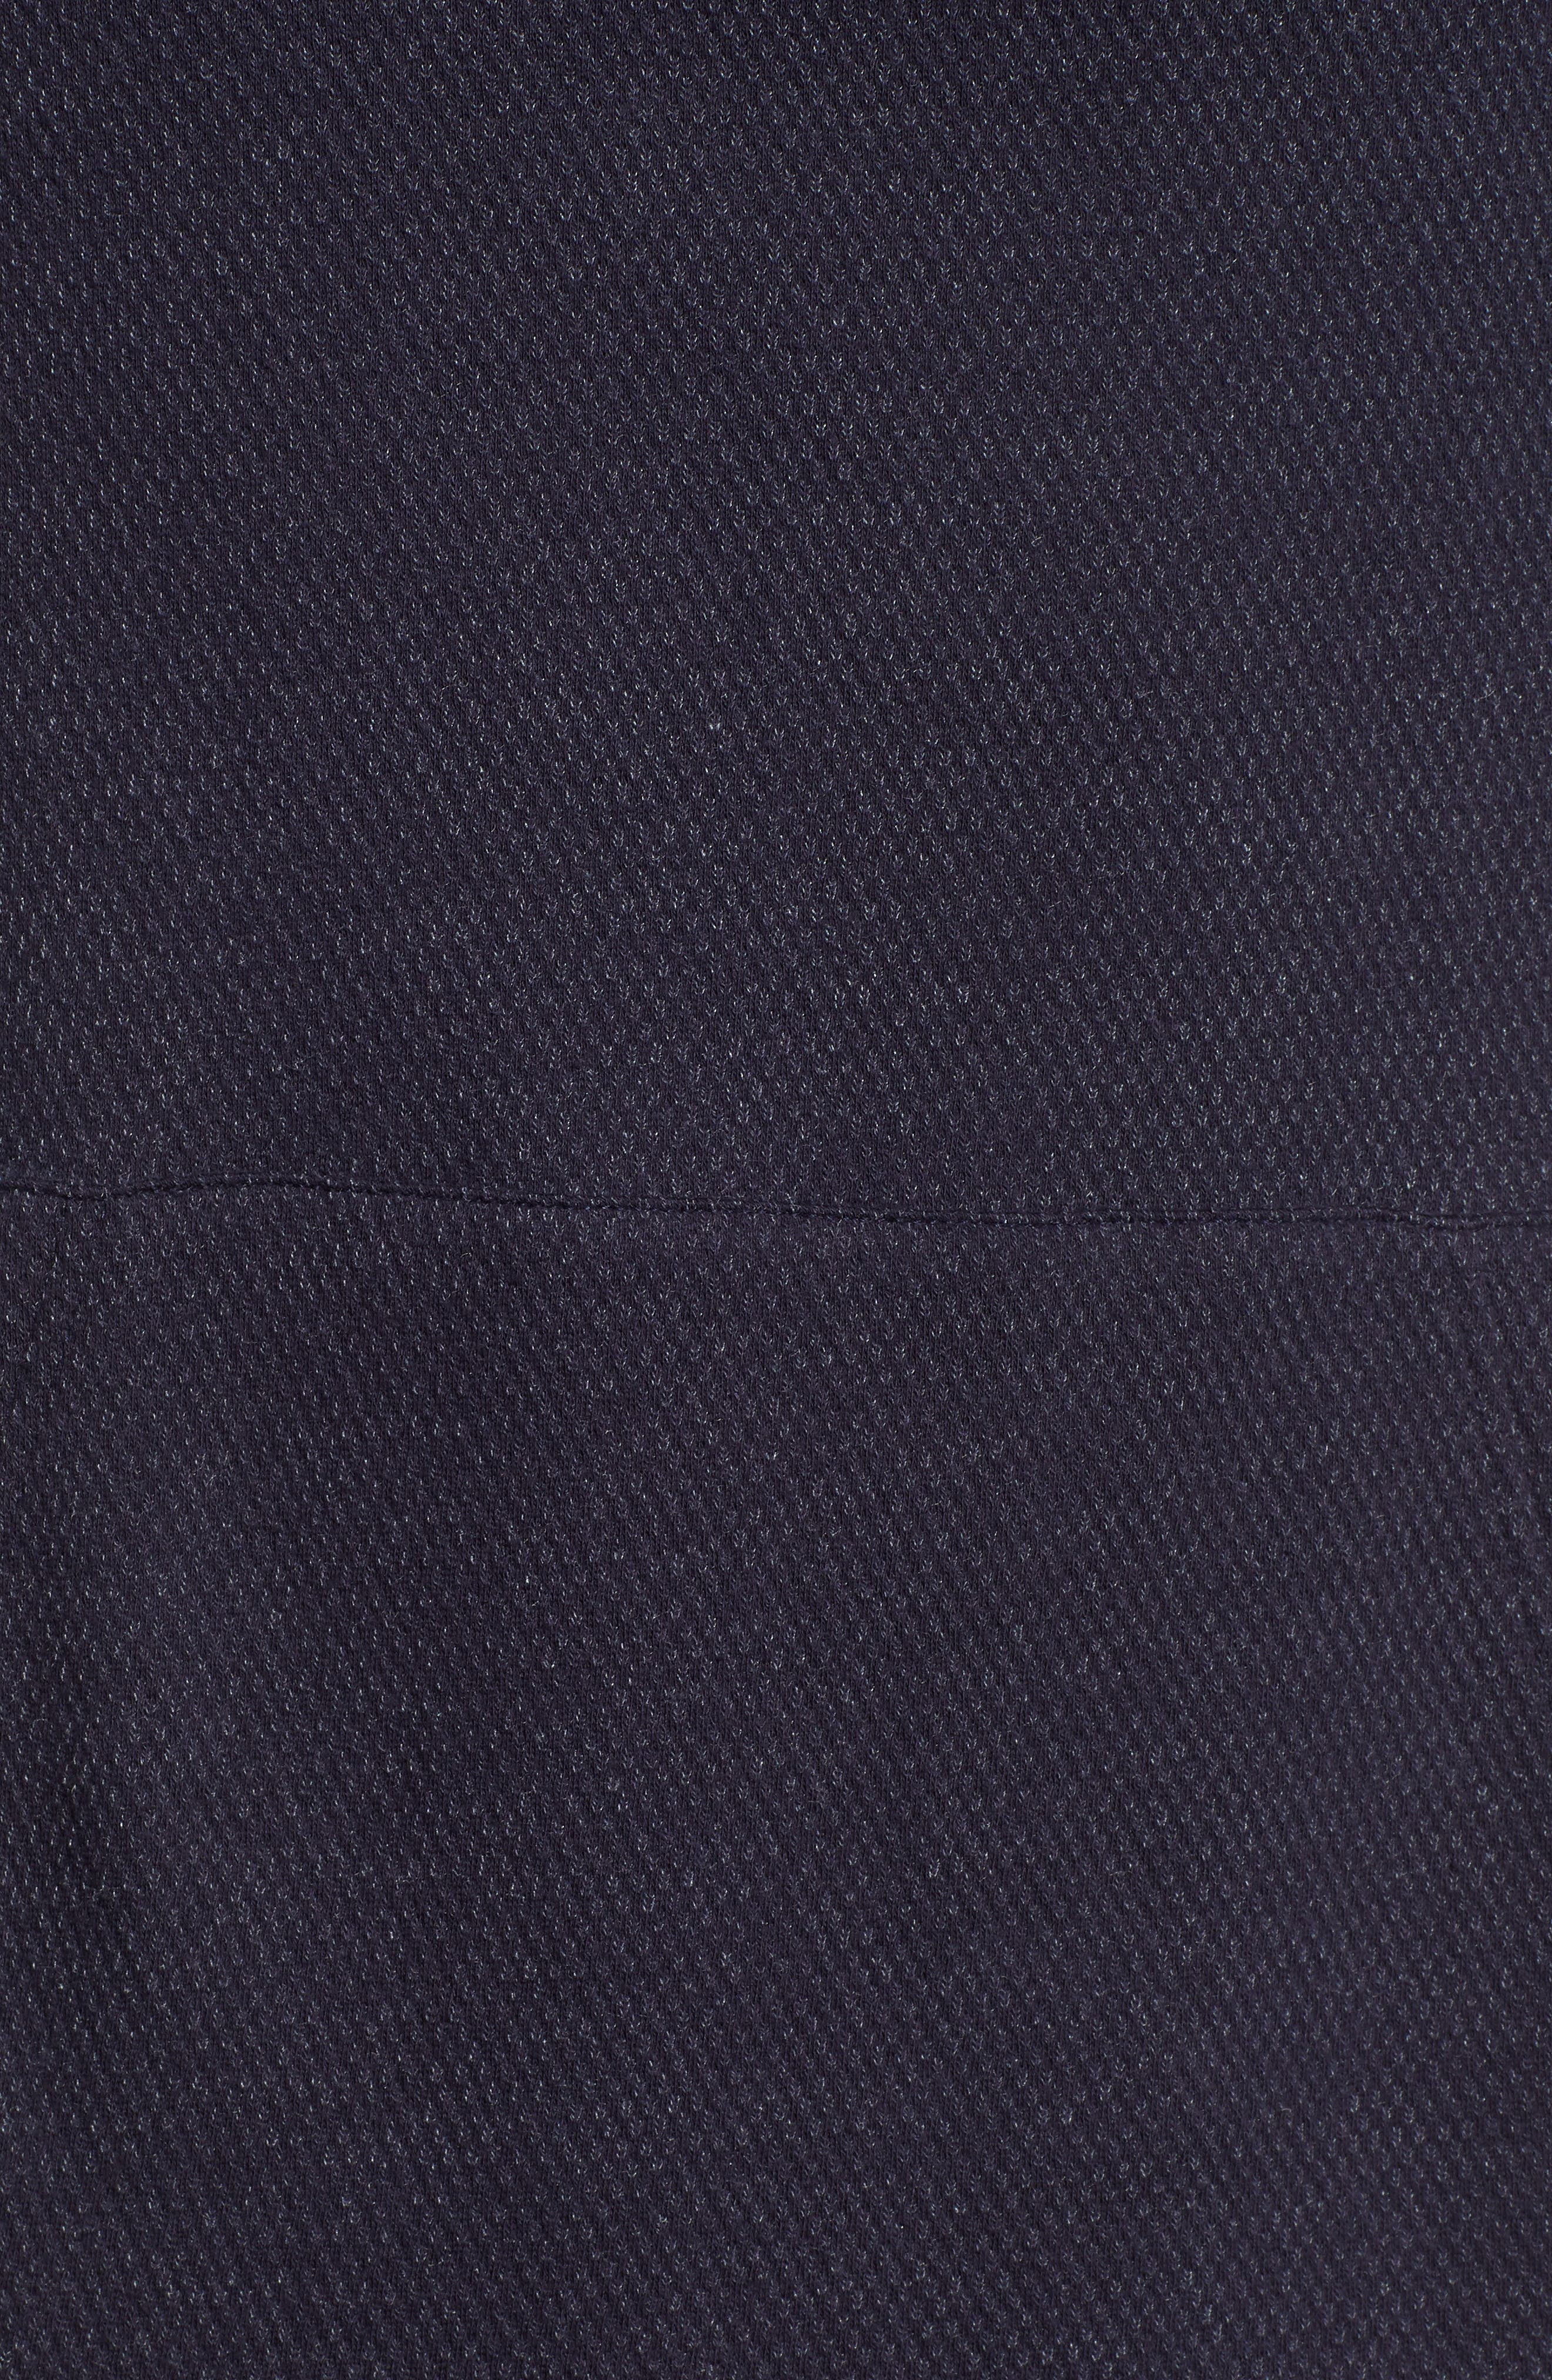 Lupo Pullover Hoodie,                             Alternate thumbnail 5, color,                             NEW NAVY